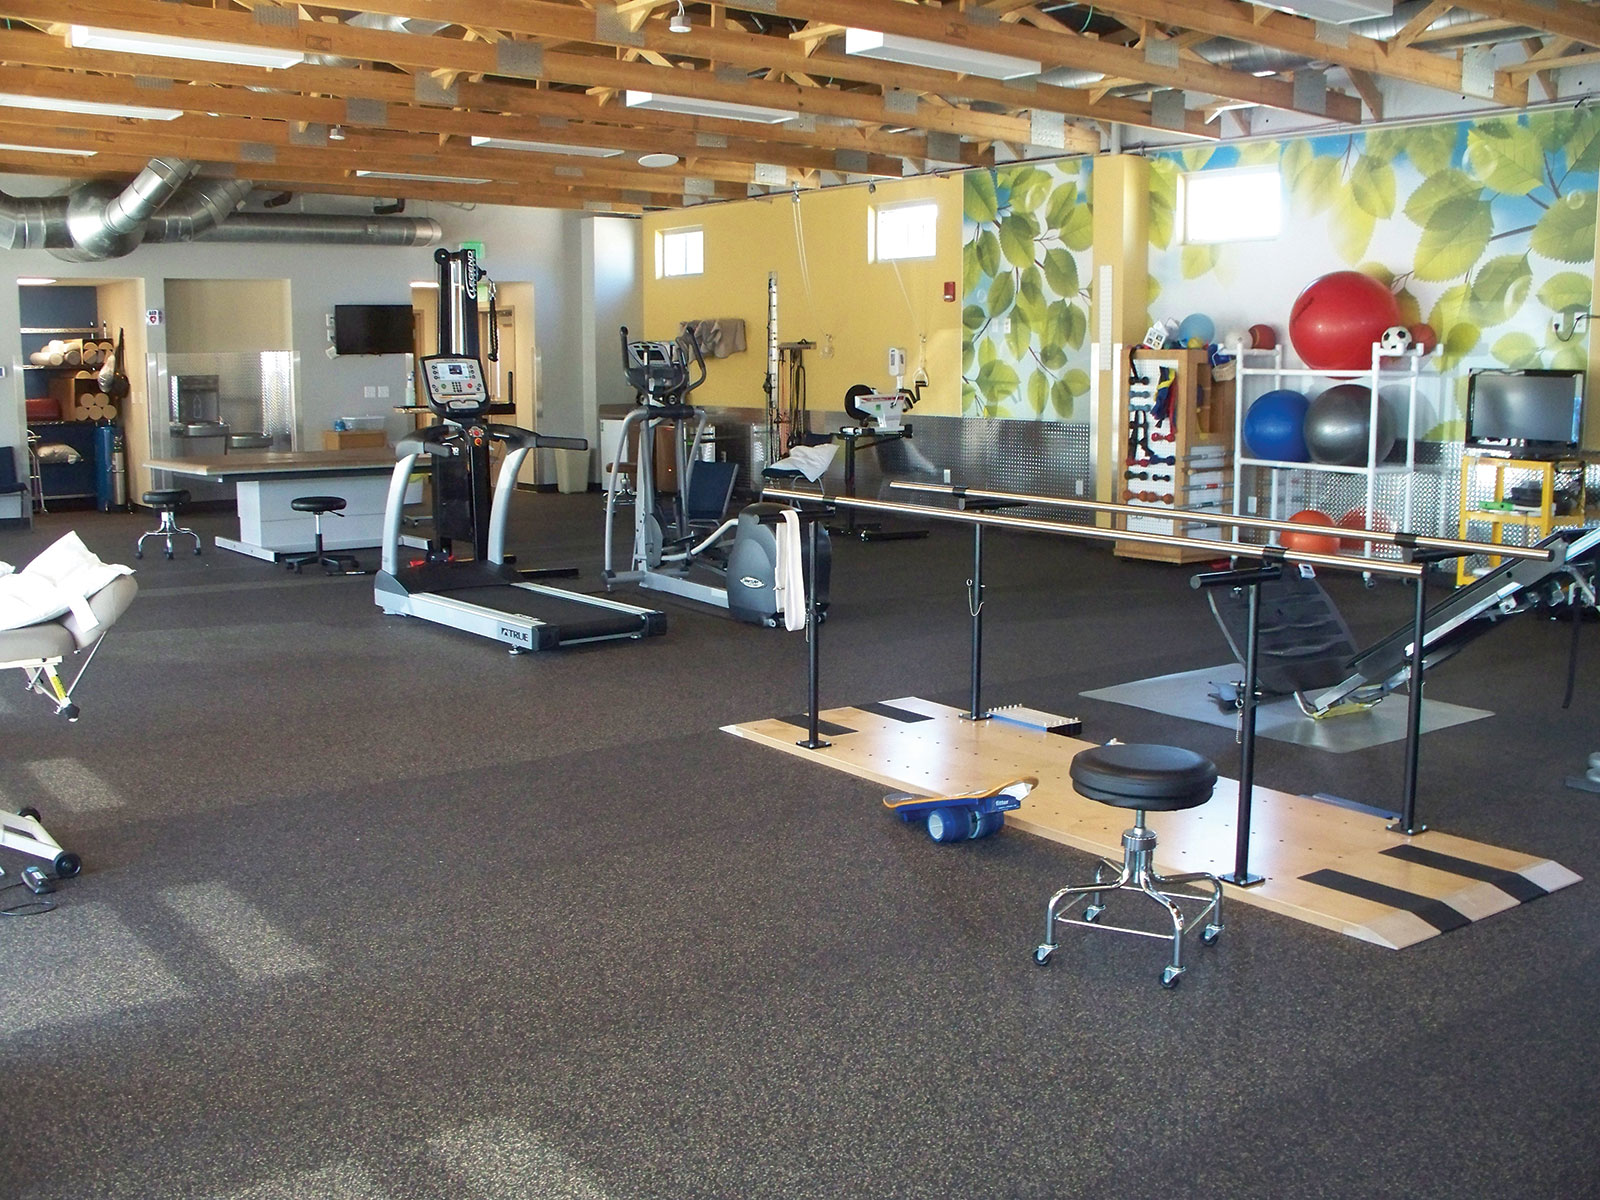 Rehabilitation gym room with modern equipment prowers medical center